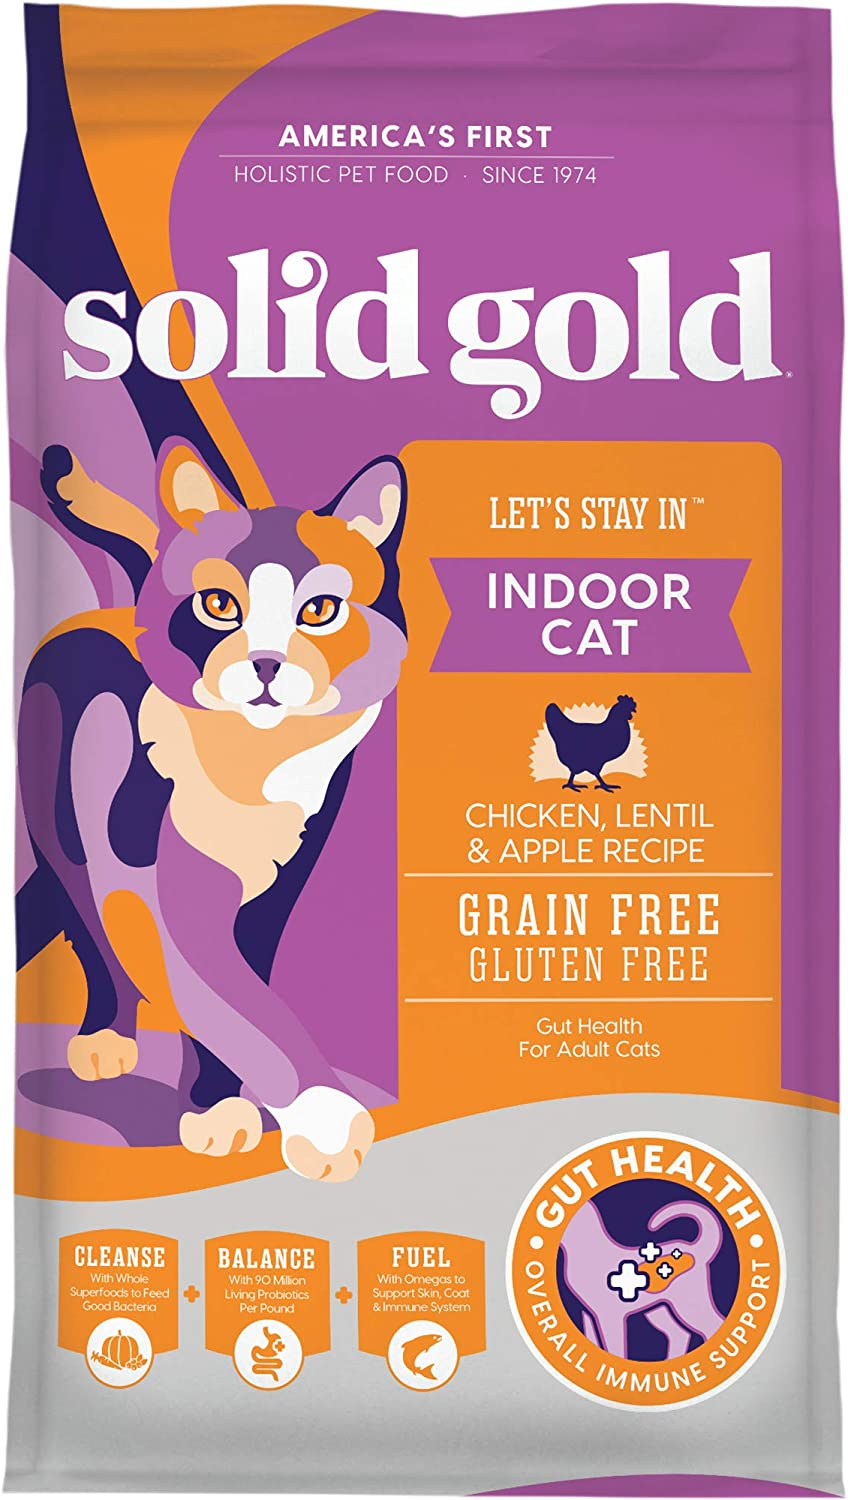 3. Solid Gold Let's Stay In Grain-Free Dry Food for Indoor Adult Cats